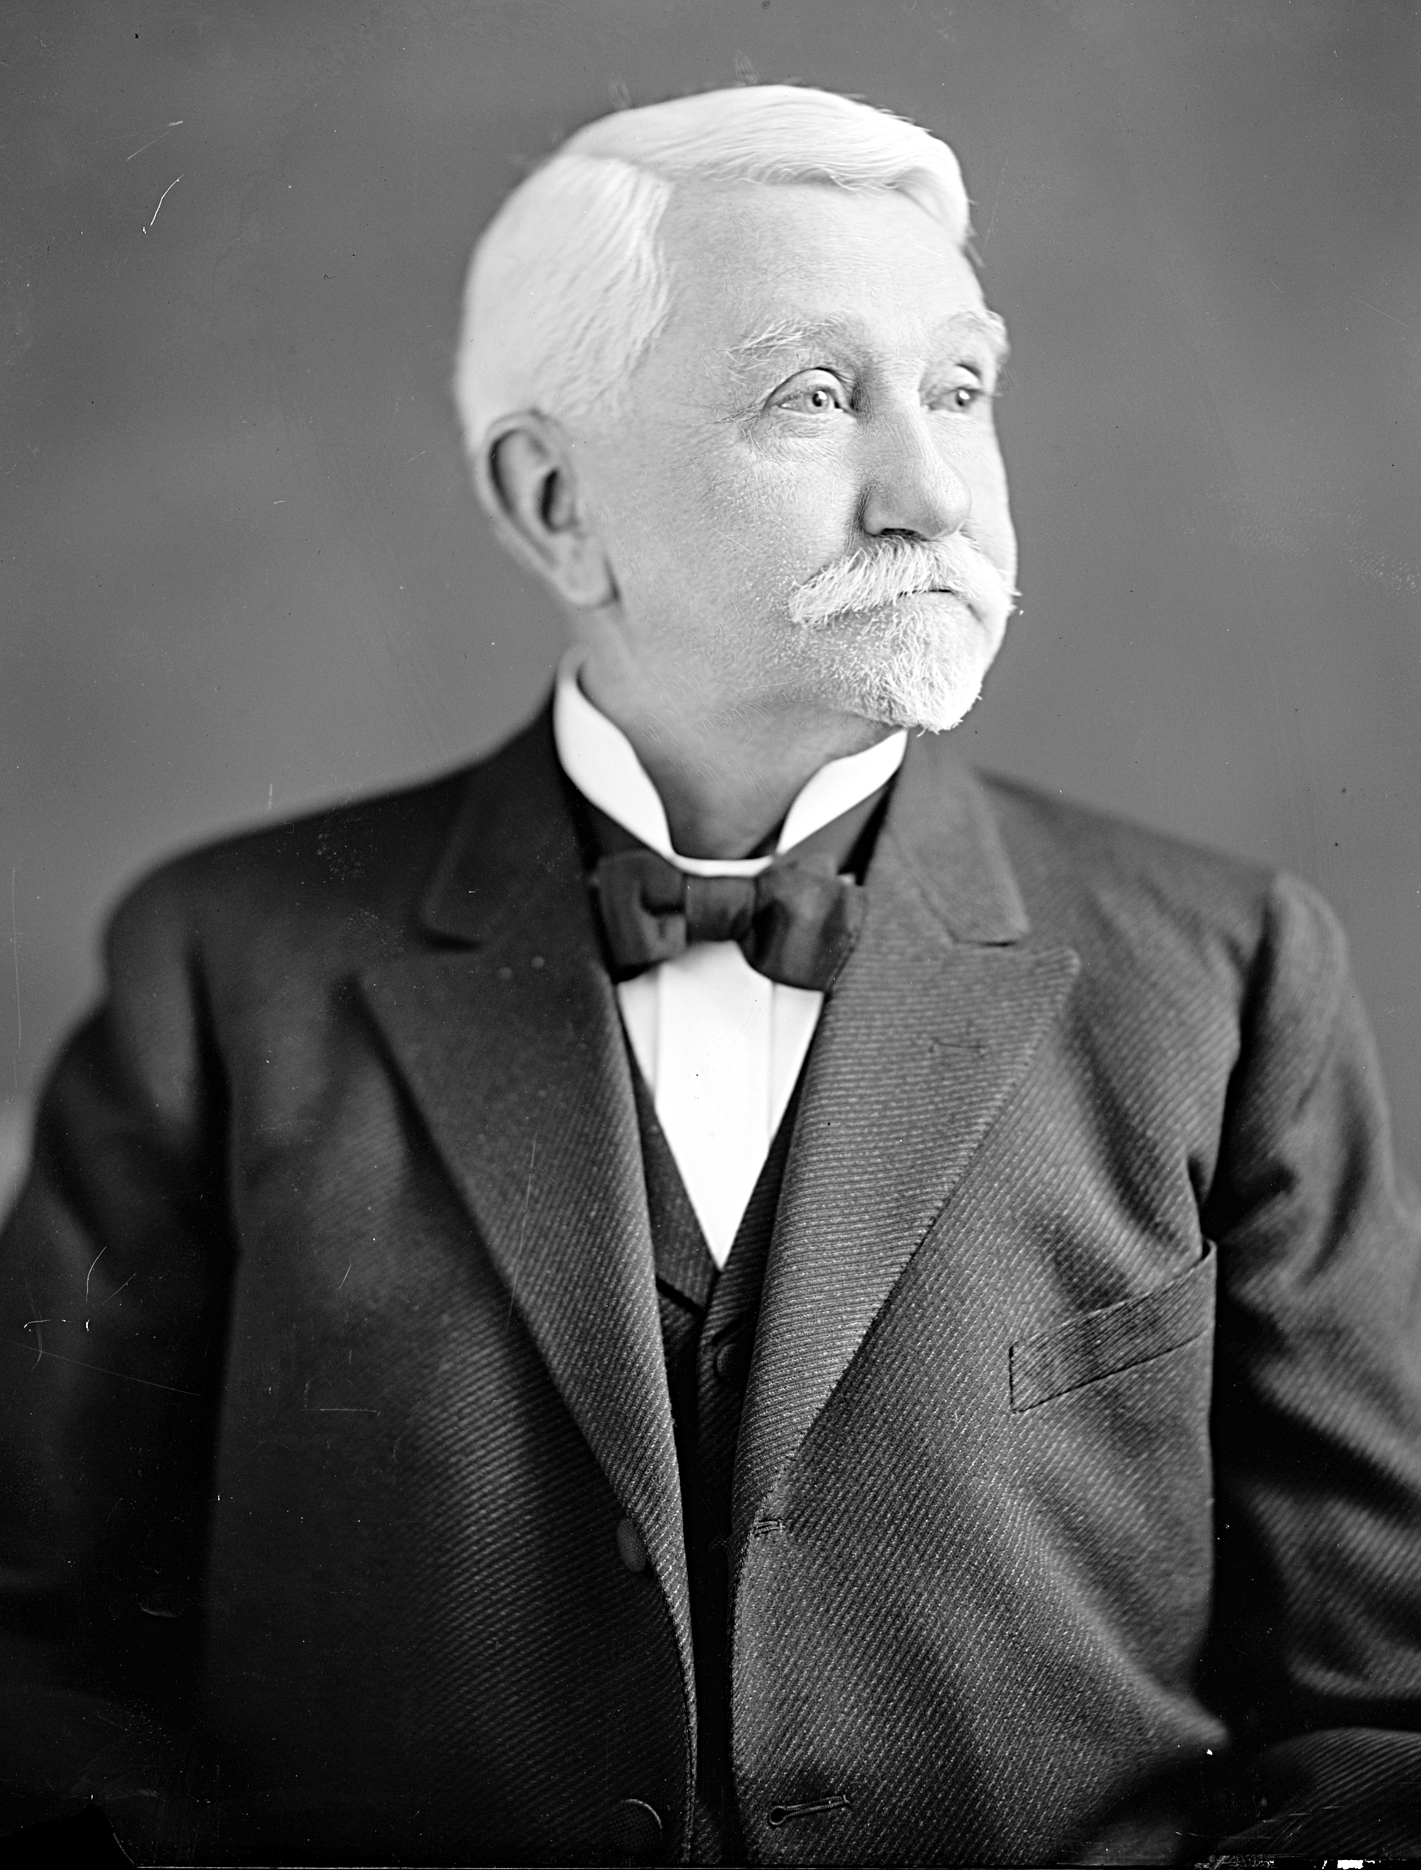 Harris & Ewing Photo Collection, Library of Congress